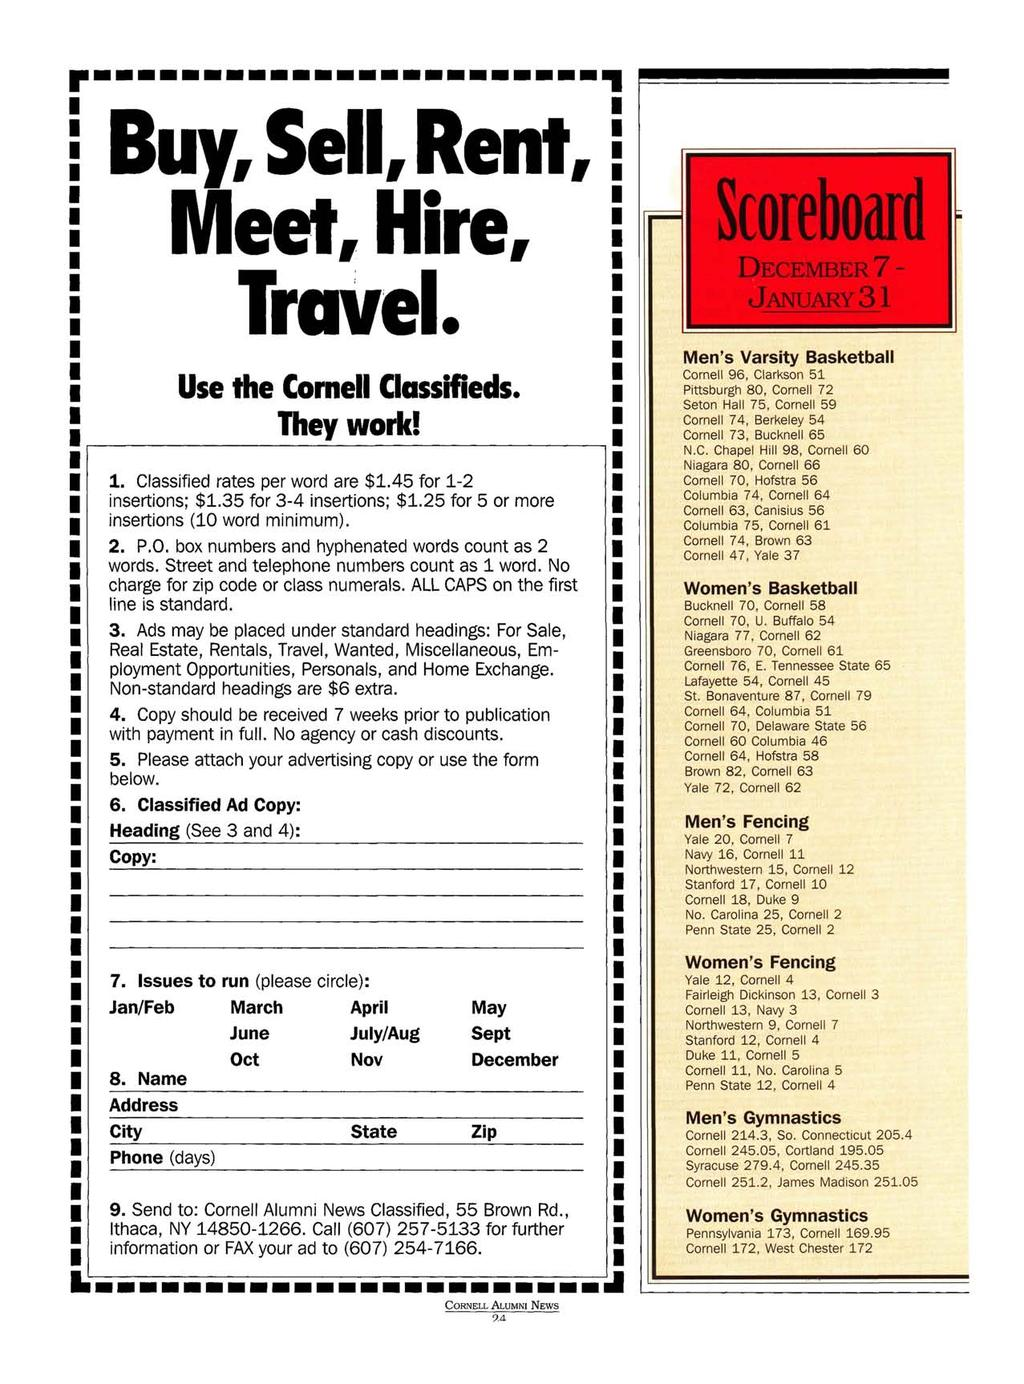 Buy, Sell, Rent, Meet, Hire, Use the Cornell Classifieds. They